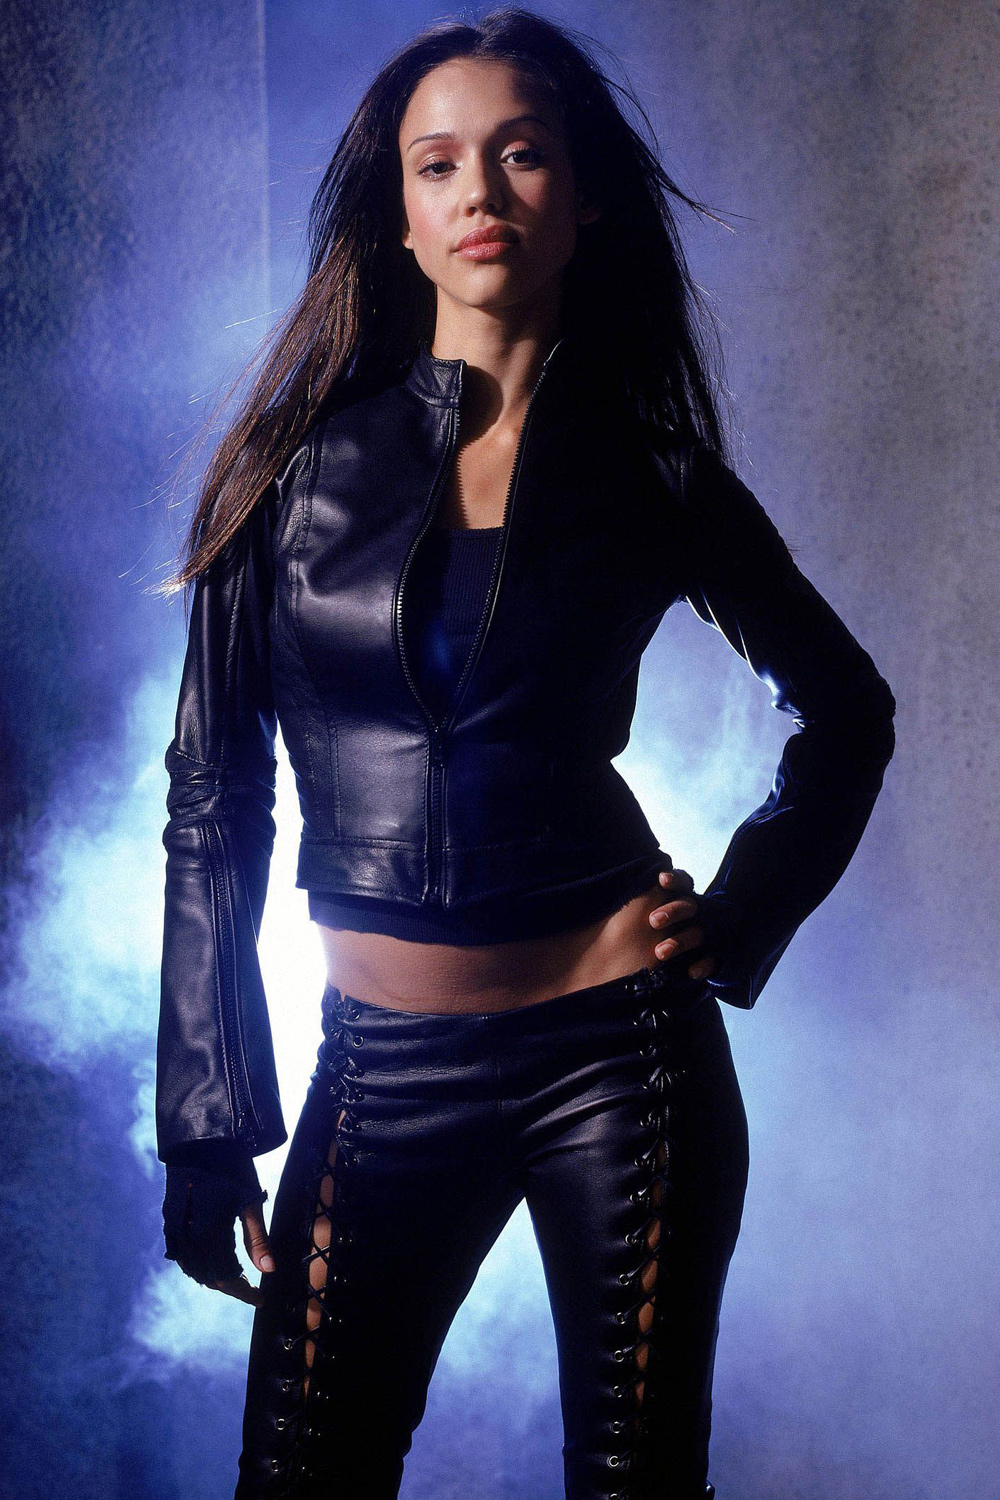 Jessica Alba - Dark Angel Photoshoot